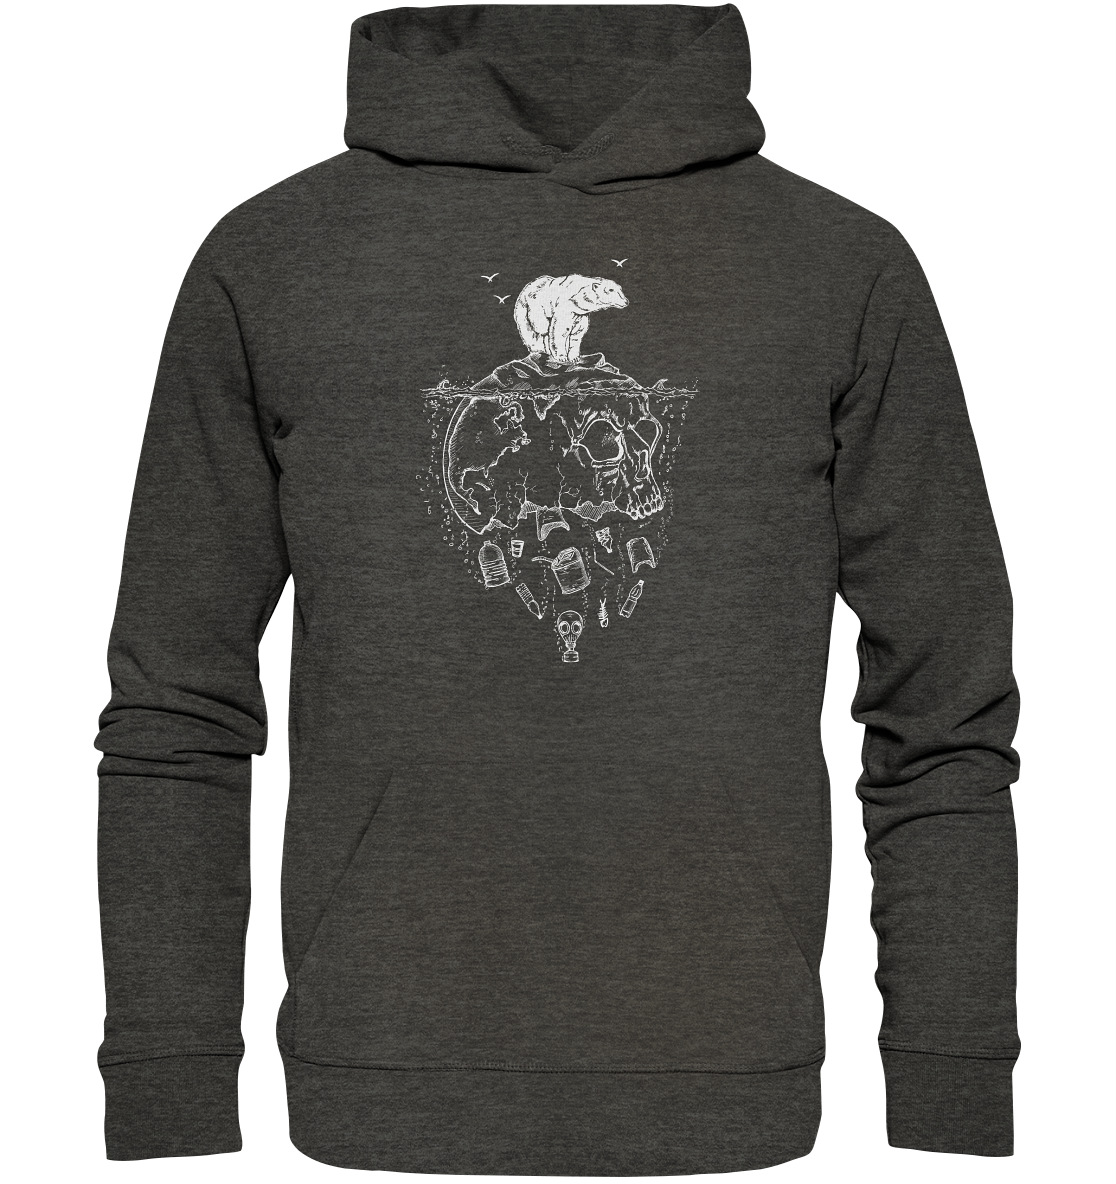 front-organic-hoodie-252625-1116x-5.png